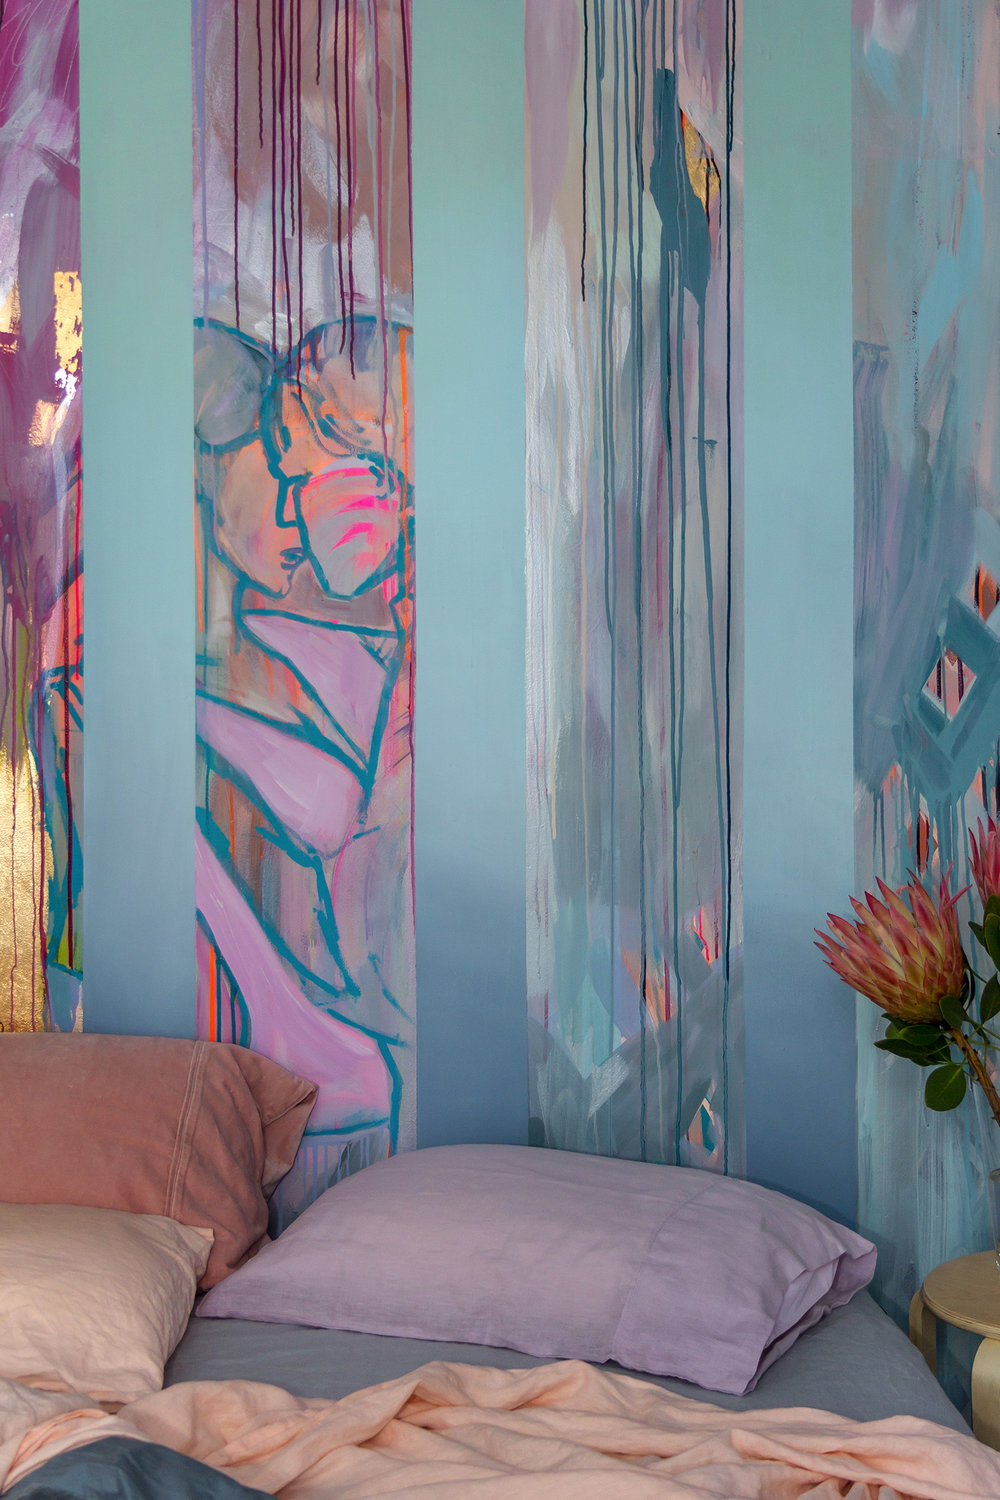 Romantic and playfully styled bedroom with abstract mural of two people dancing and in love, featuring pastel bed linen in peach, pink, lavender and blue by Kip & Co and King Protea flowers on bedside table.